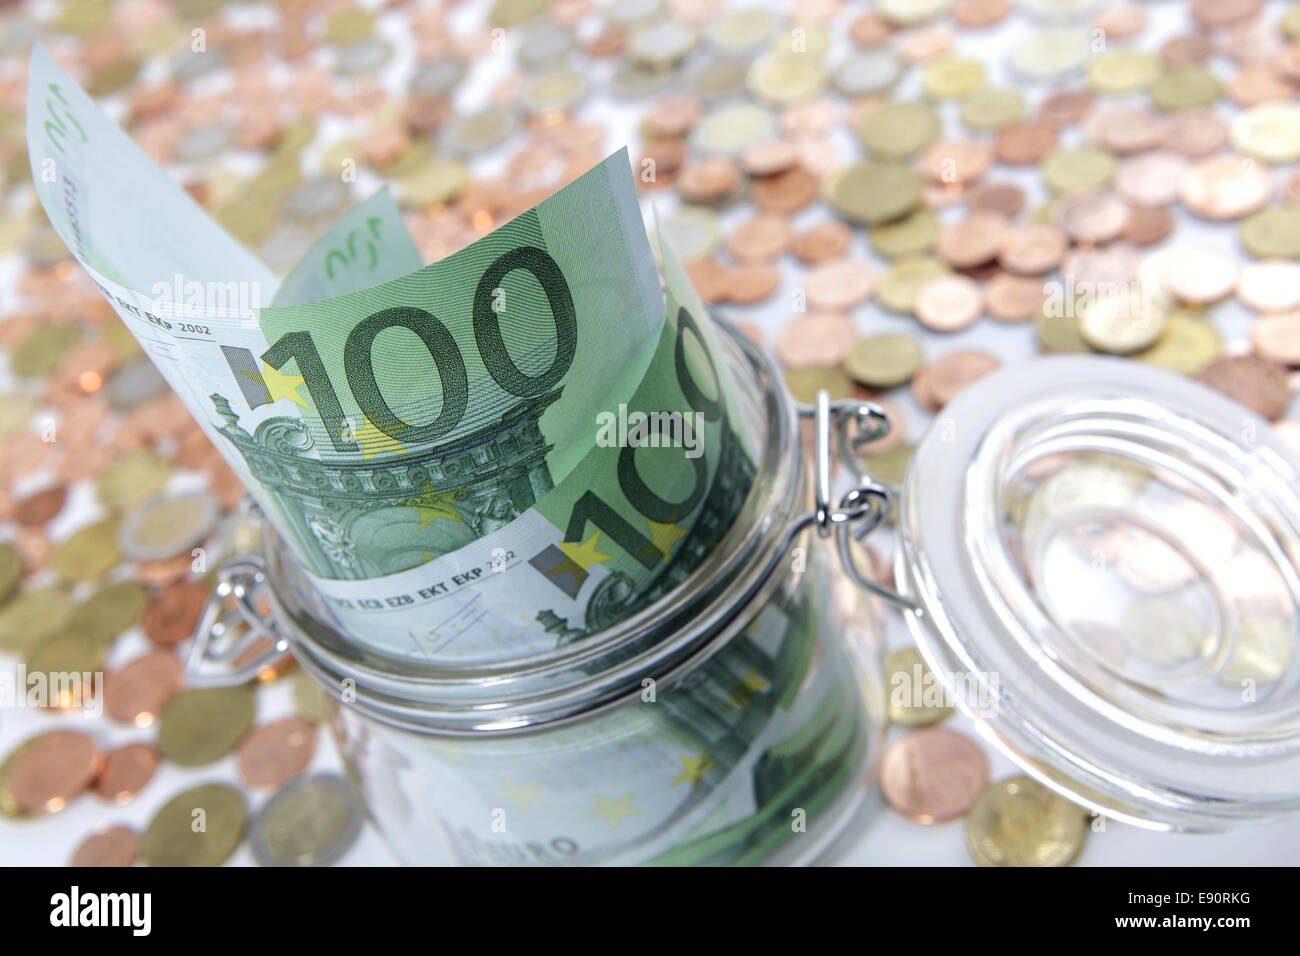 Glass jar with Euro bills and coins - Stock Image